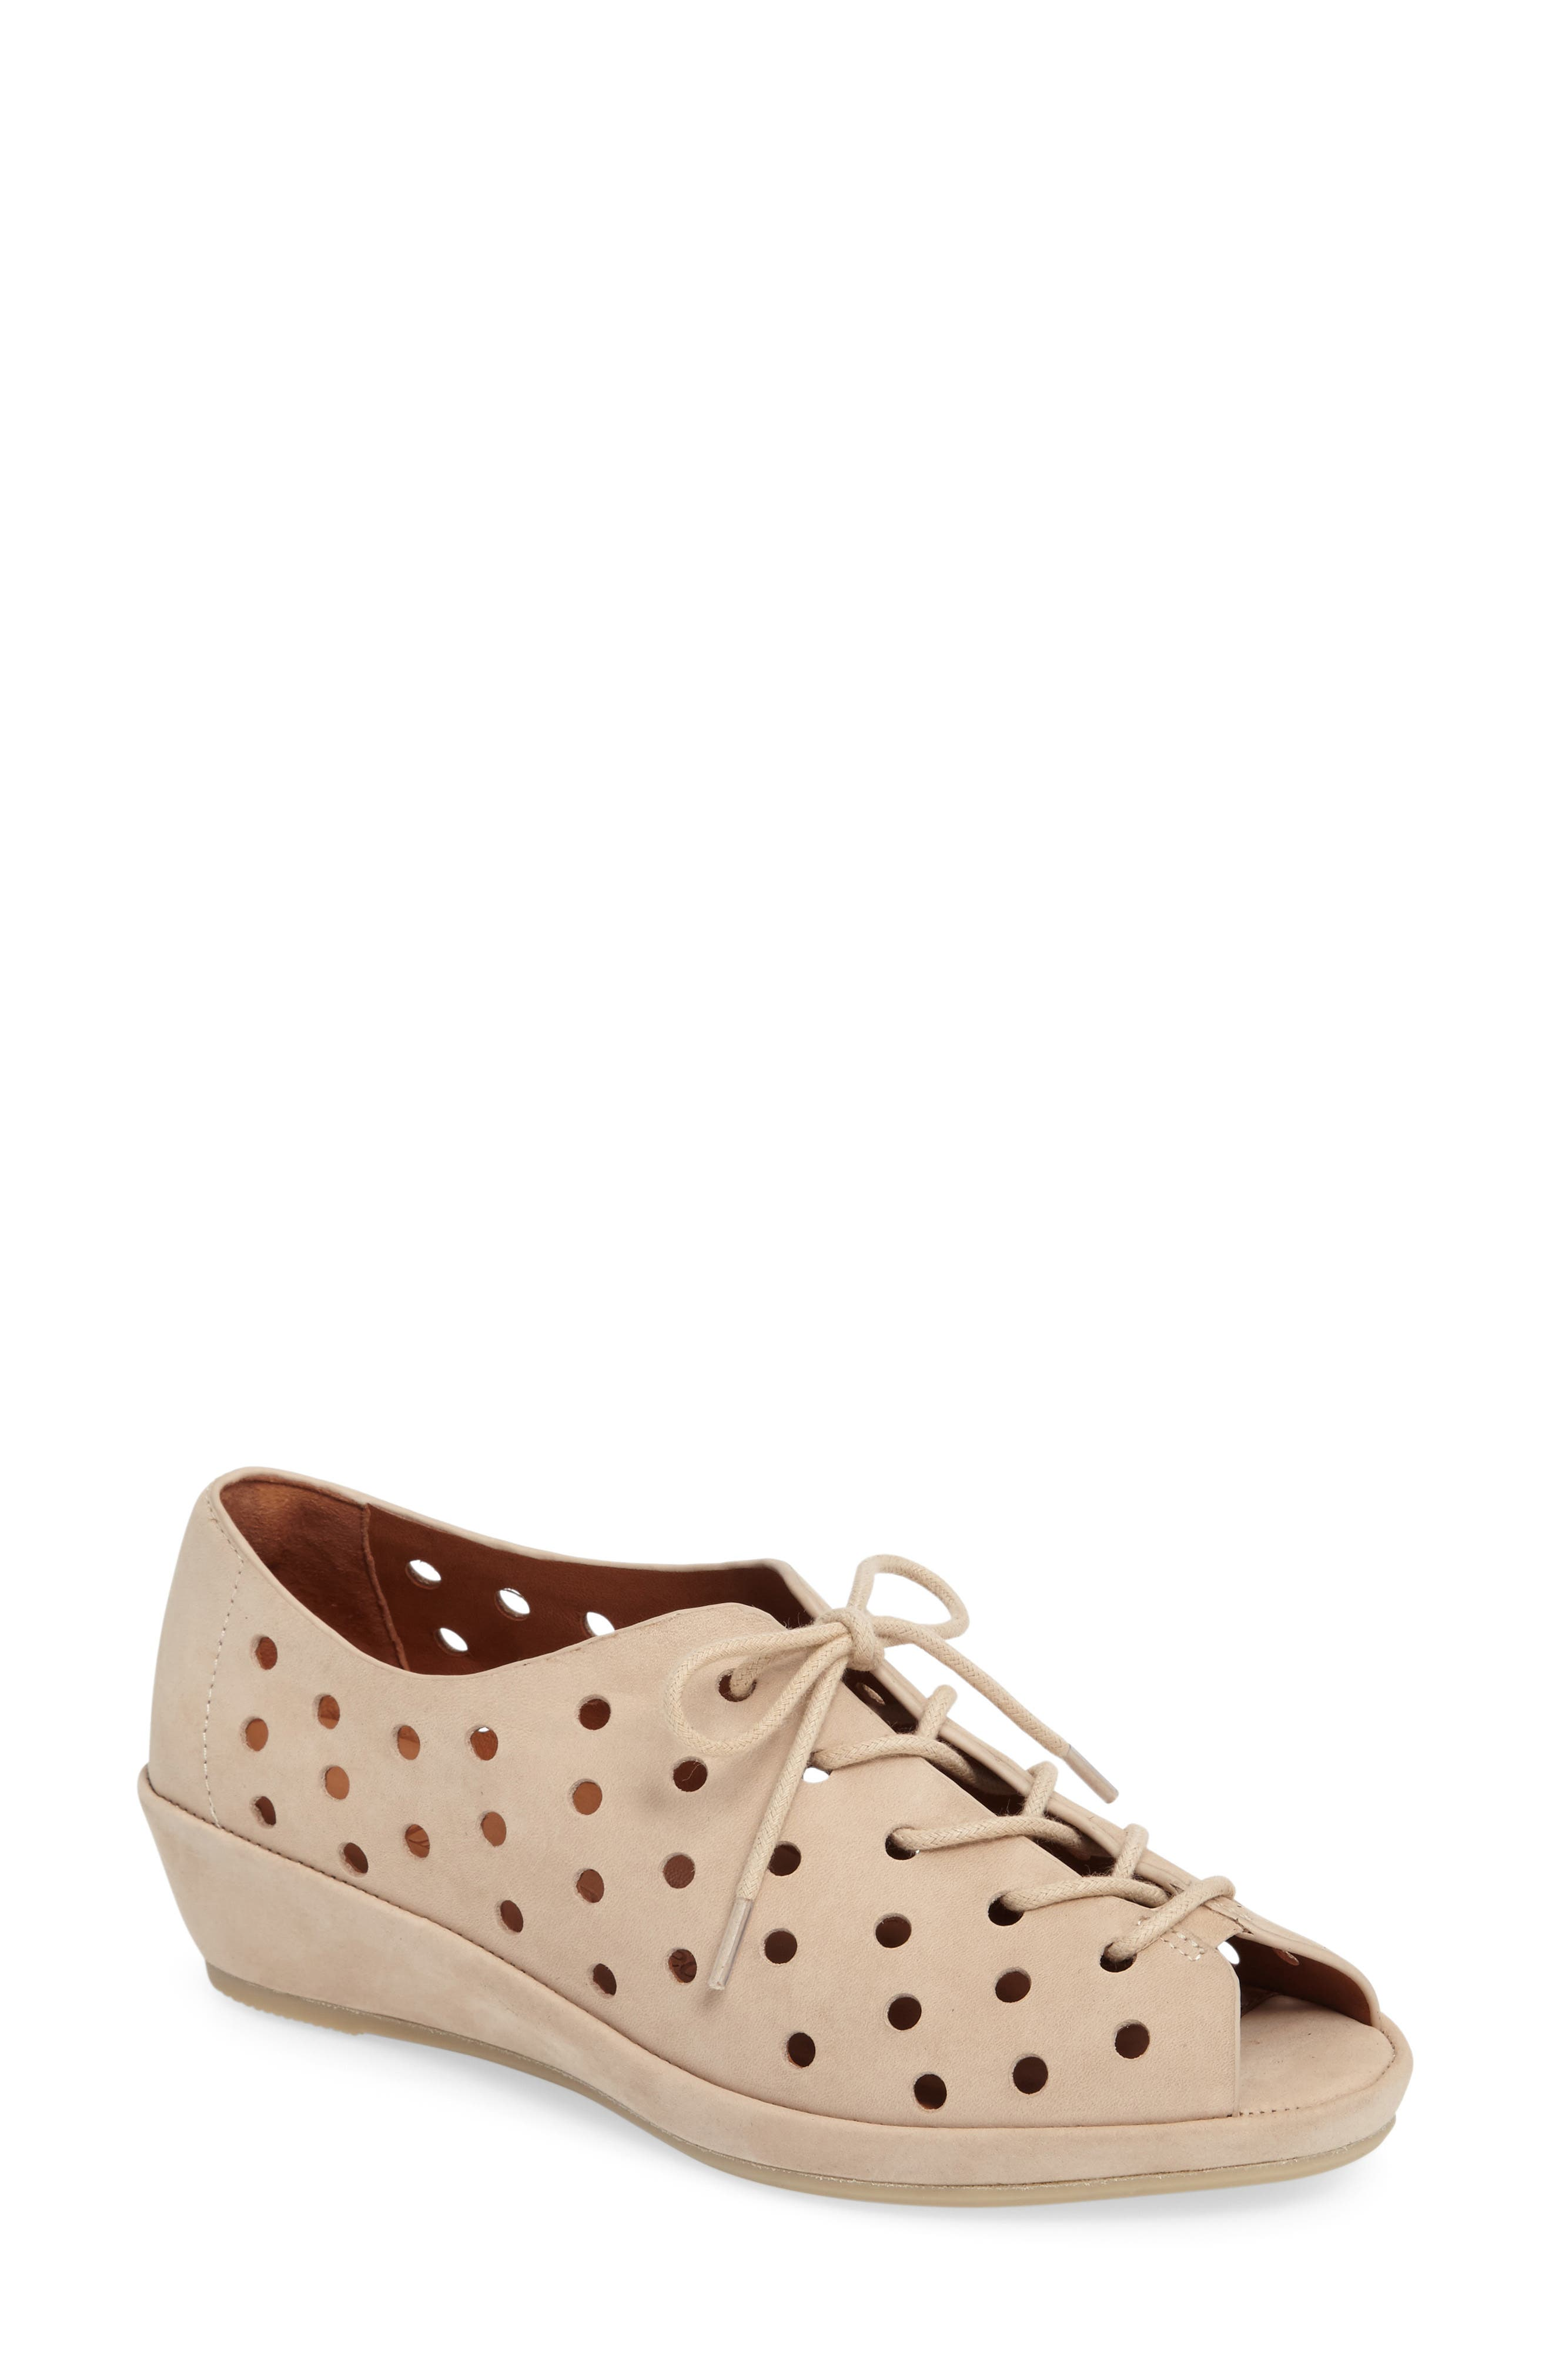 Main Image - L'Amour des Pieds Boccoo Perforated Lace-Up Oxford (Women)